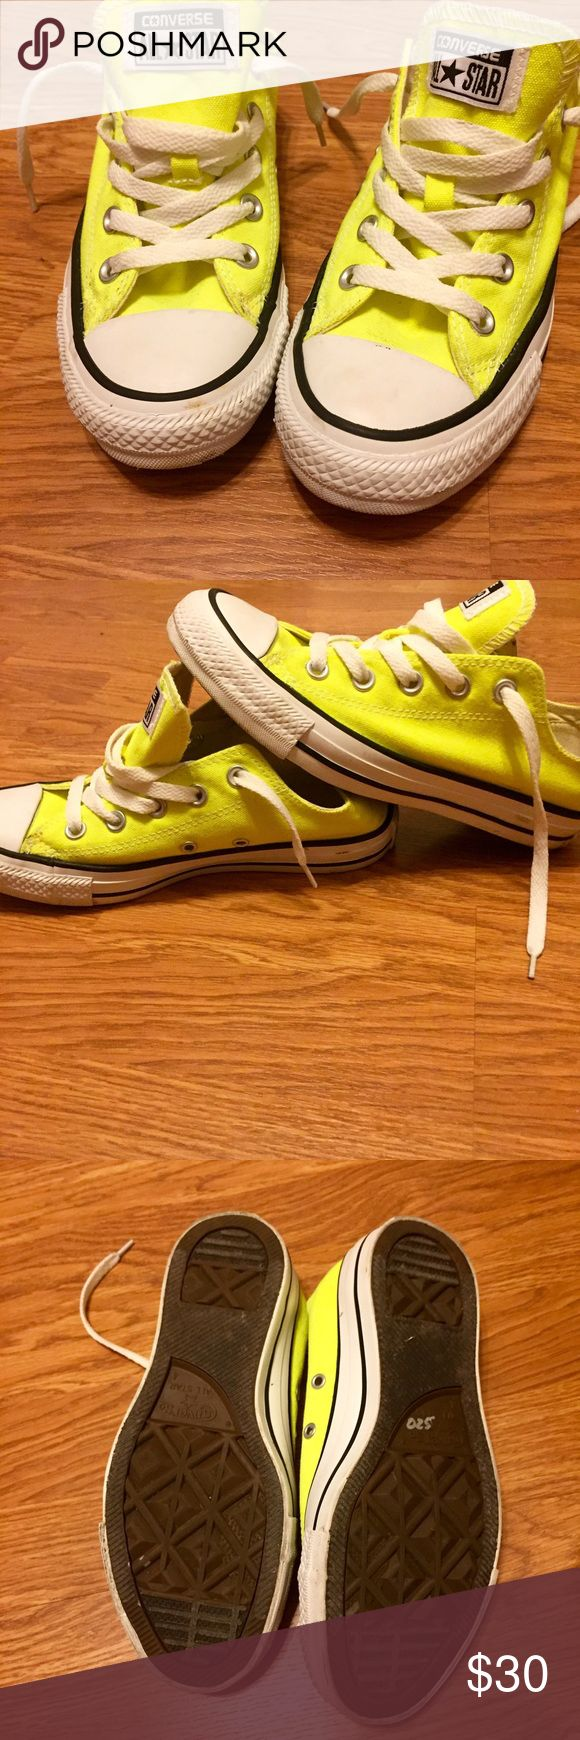 Converse neon yellow shoes Worn once, in good condition. Converse Shoes Athletic Shoes